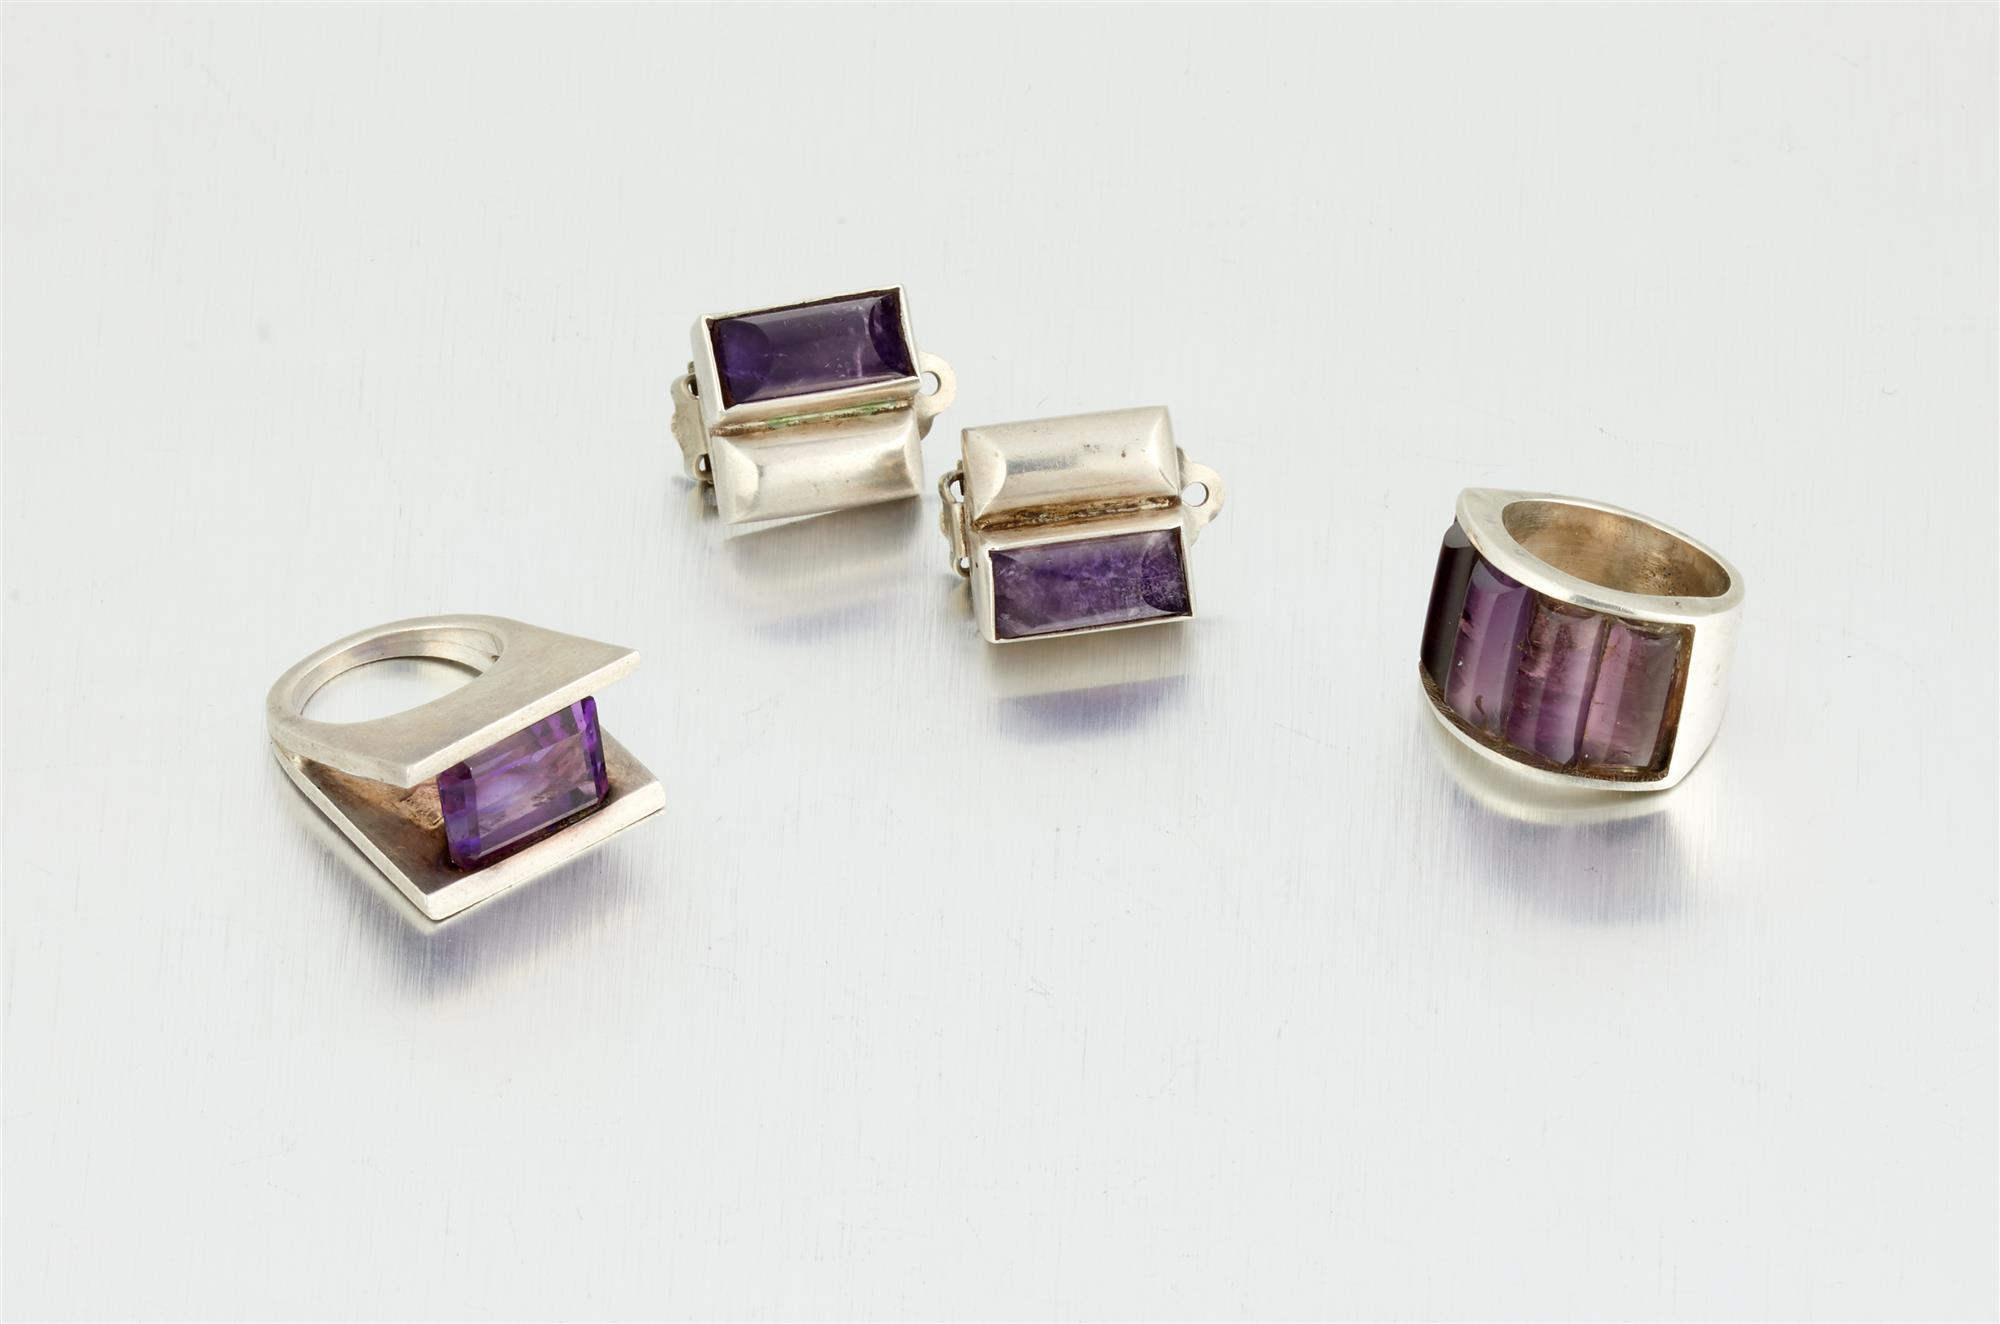 A group of Antonio Pineda silver and amethyst jewelry